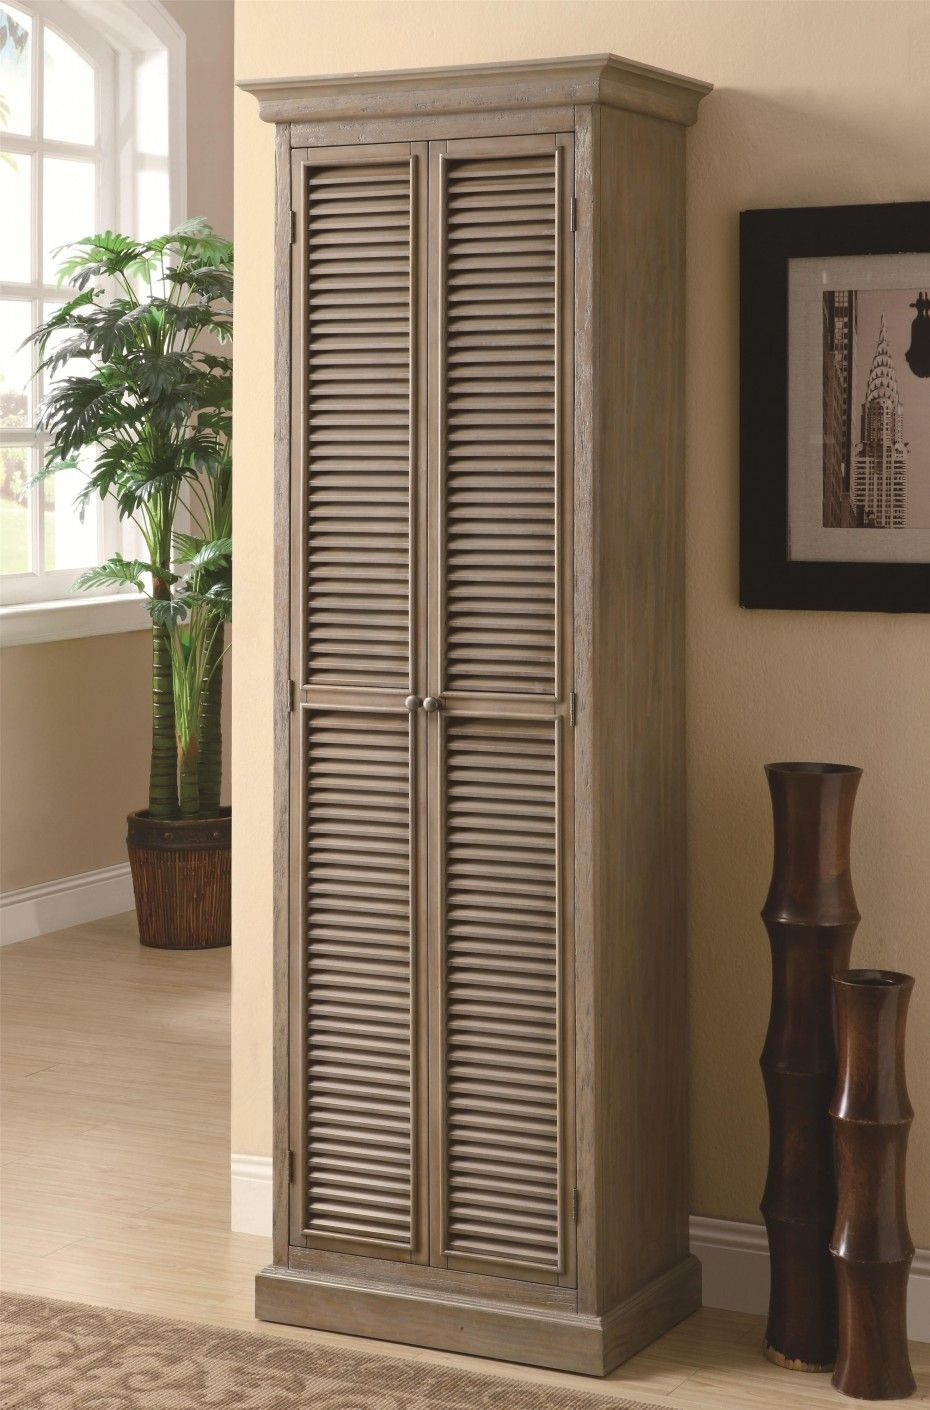 Wood Storage Cabinet with Doors Fresh Unpolished Shutter Door Tall Storage Cabinet Placed Cream